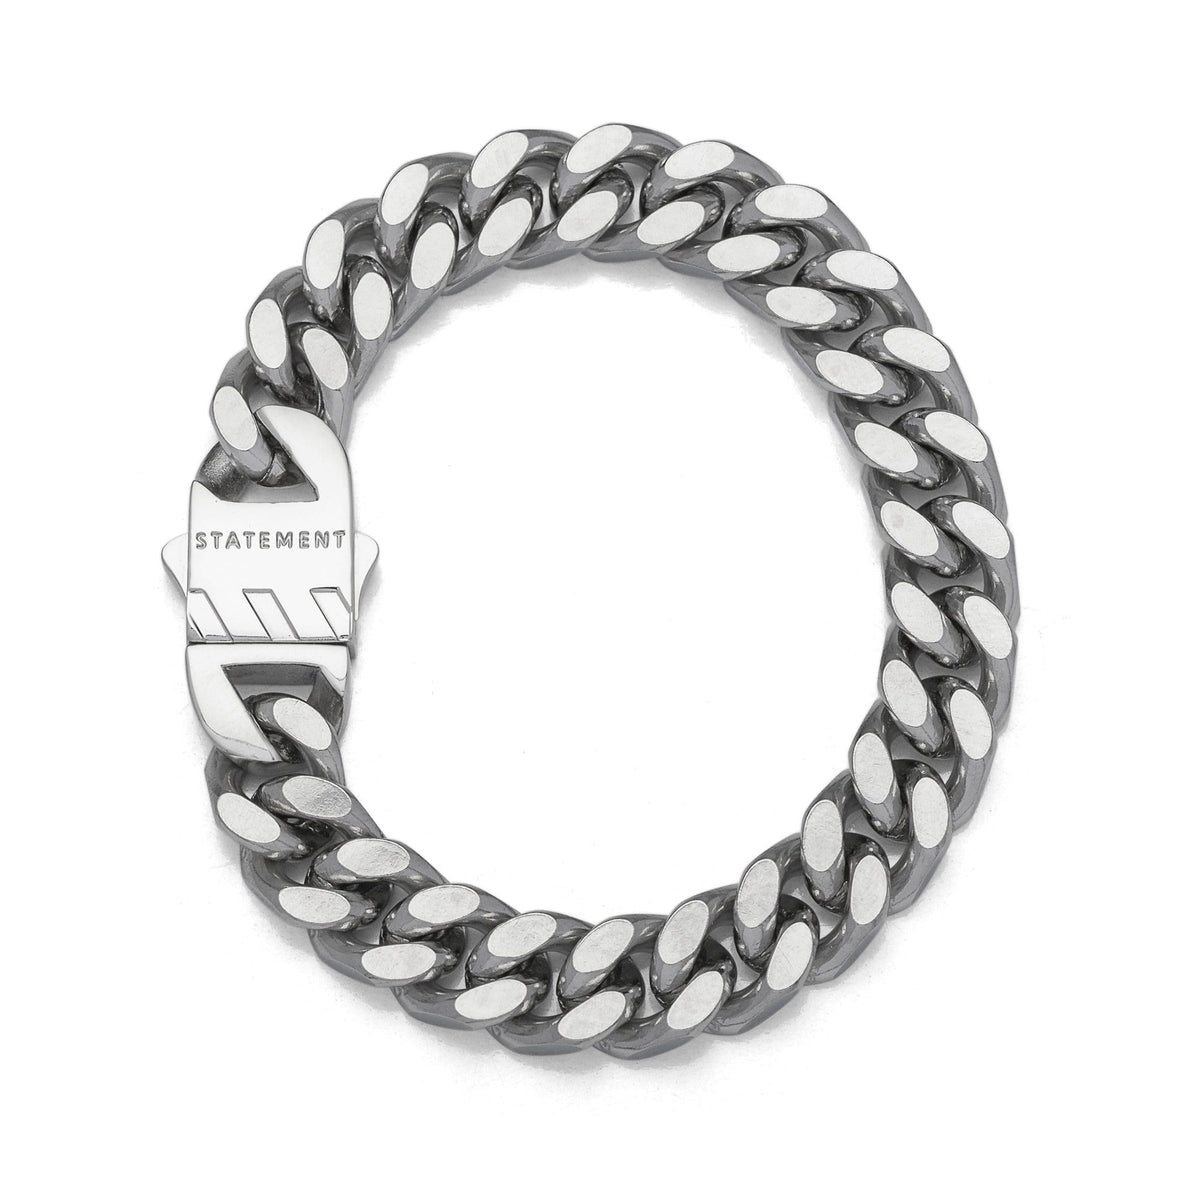 Cuban Bracelet With 11mm Cuban Links Mens Bracelet_02